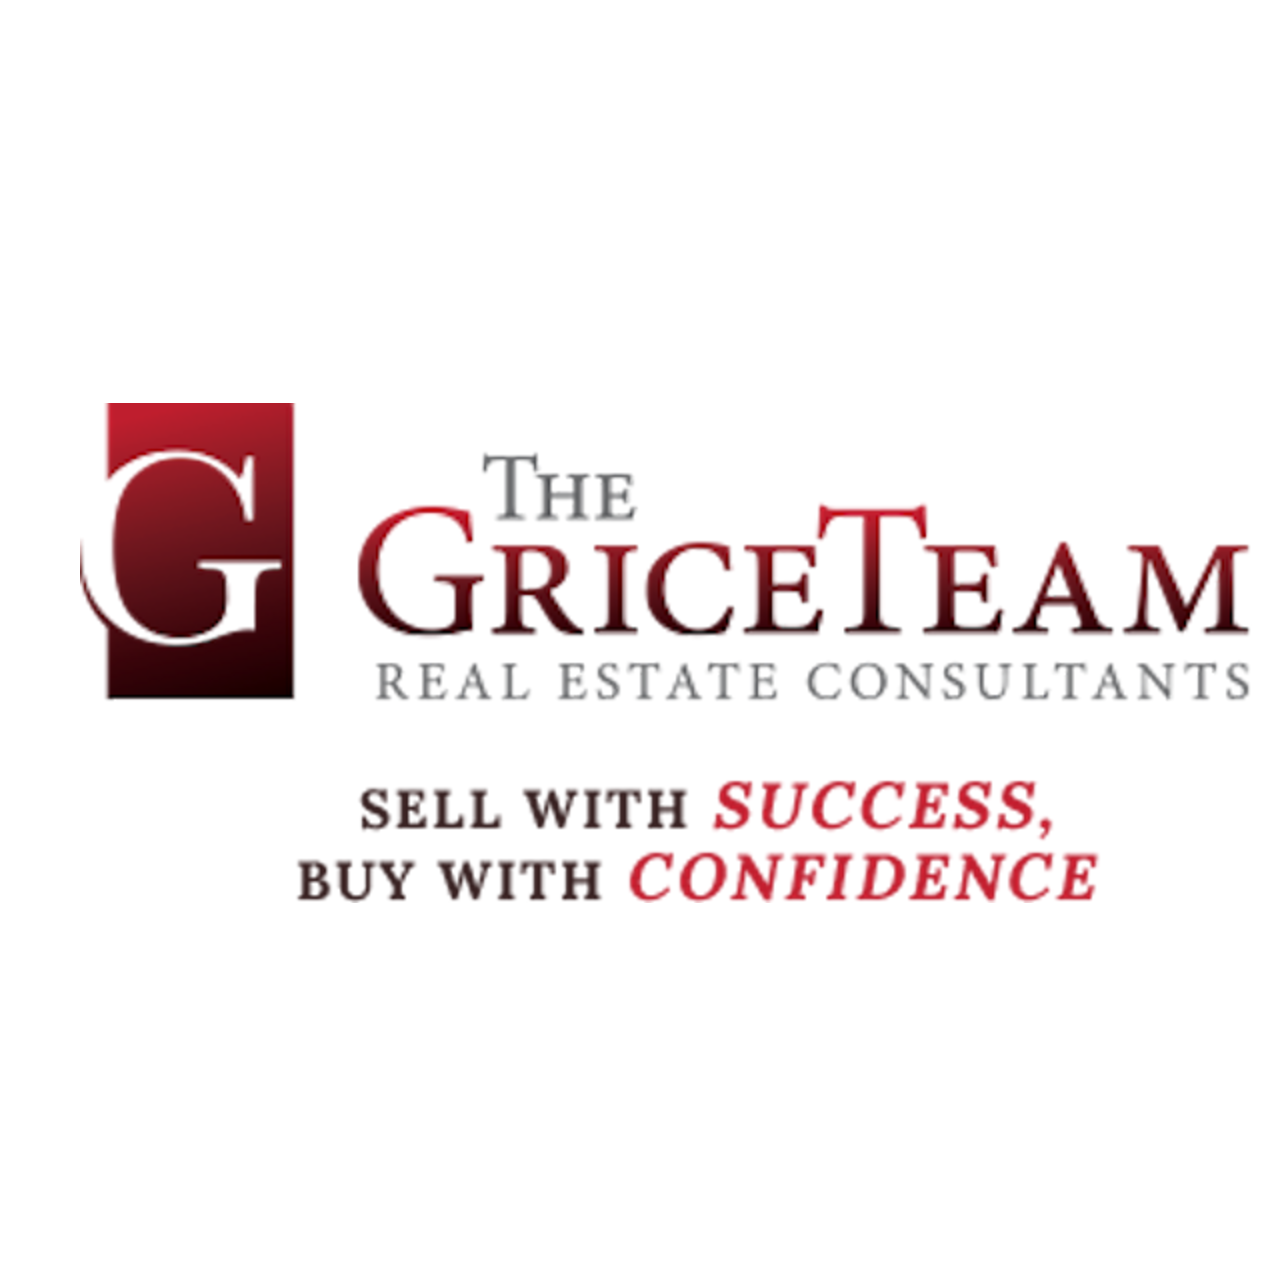 James Grice P.A - The Grice Team | Keller Williams Realty Wellington